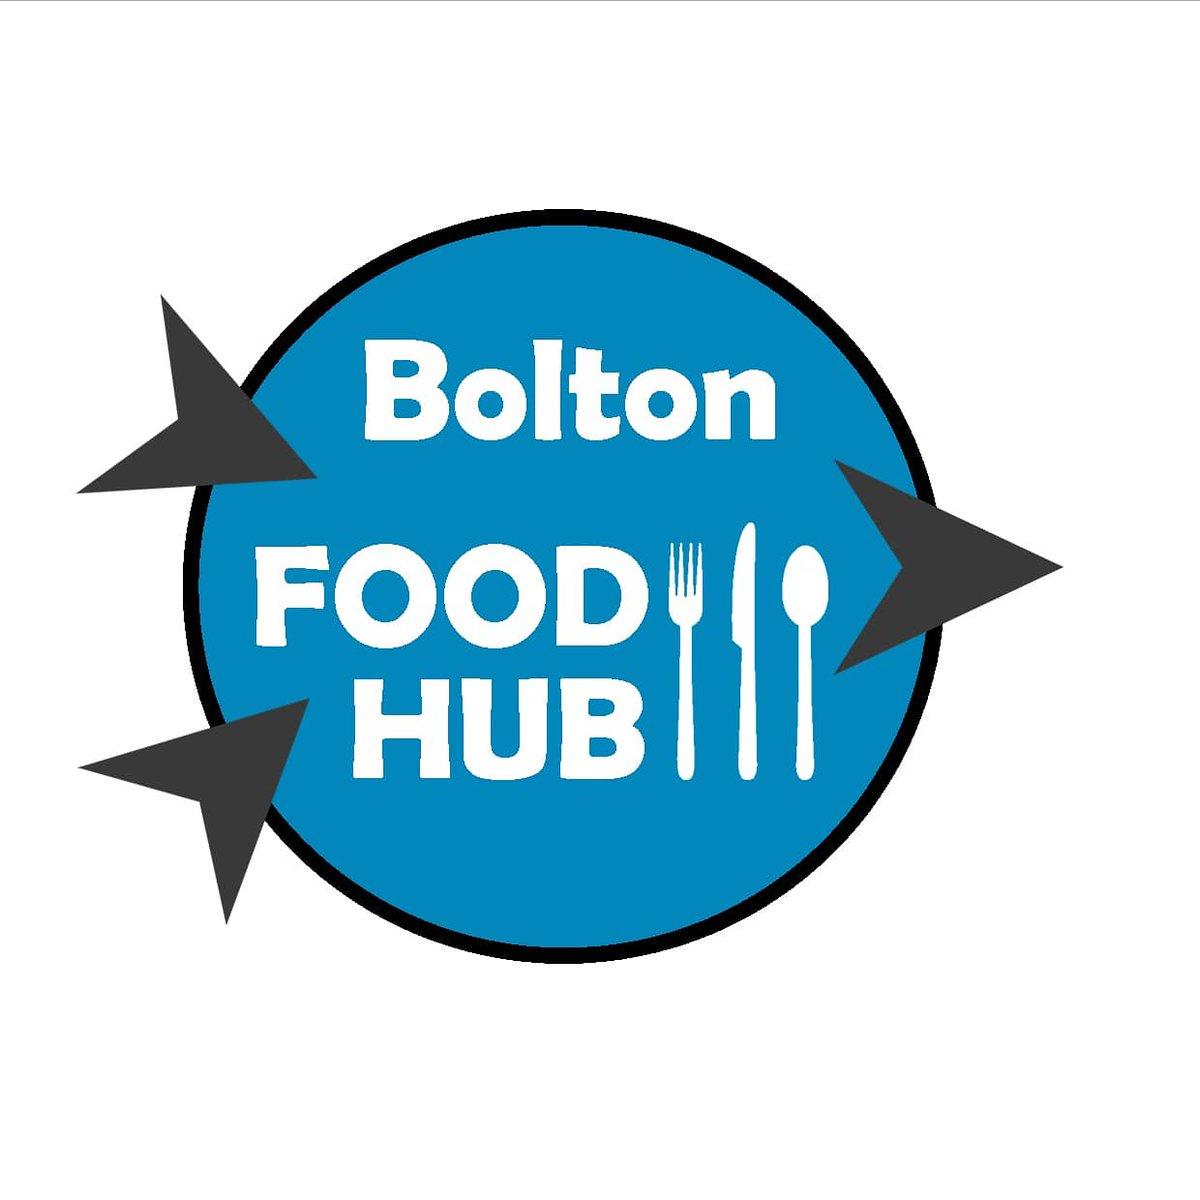 We have added a new page to our website! Click the link to find out more about the Bolton Food Hub! urbanoutreach.co.uk/portfolio-post… #Boltonpowerofone